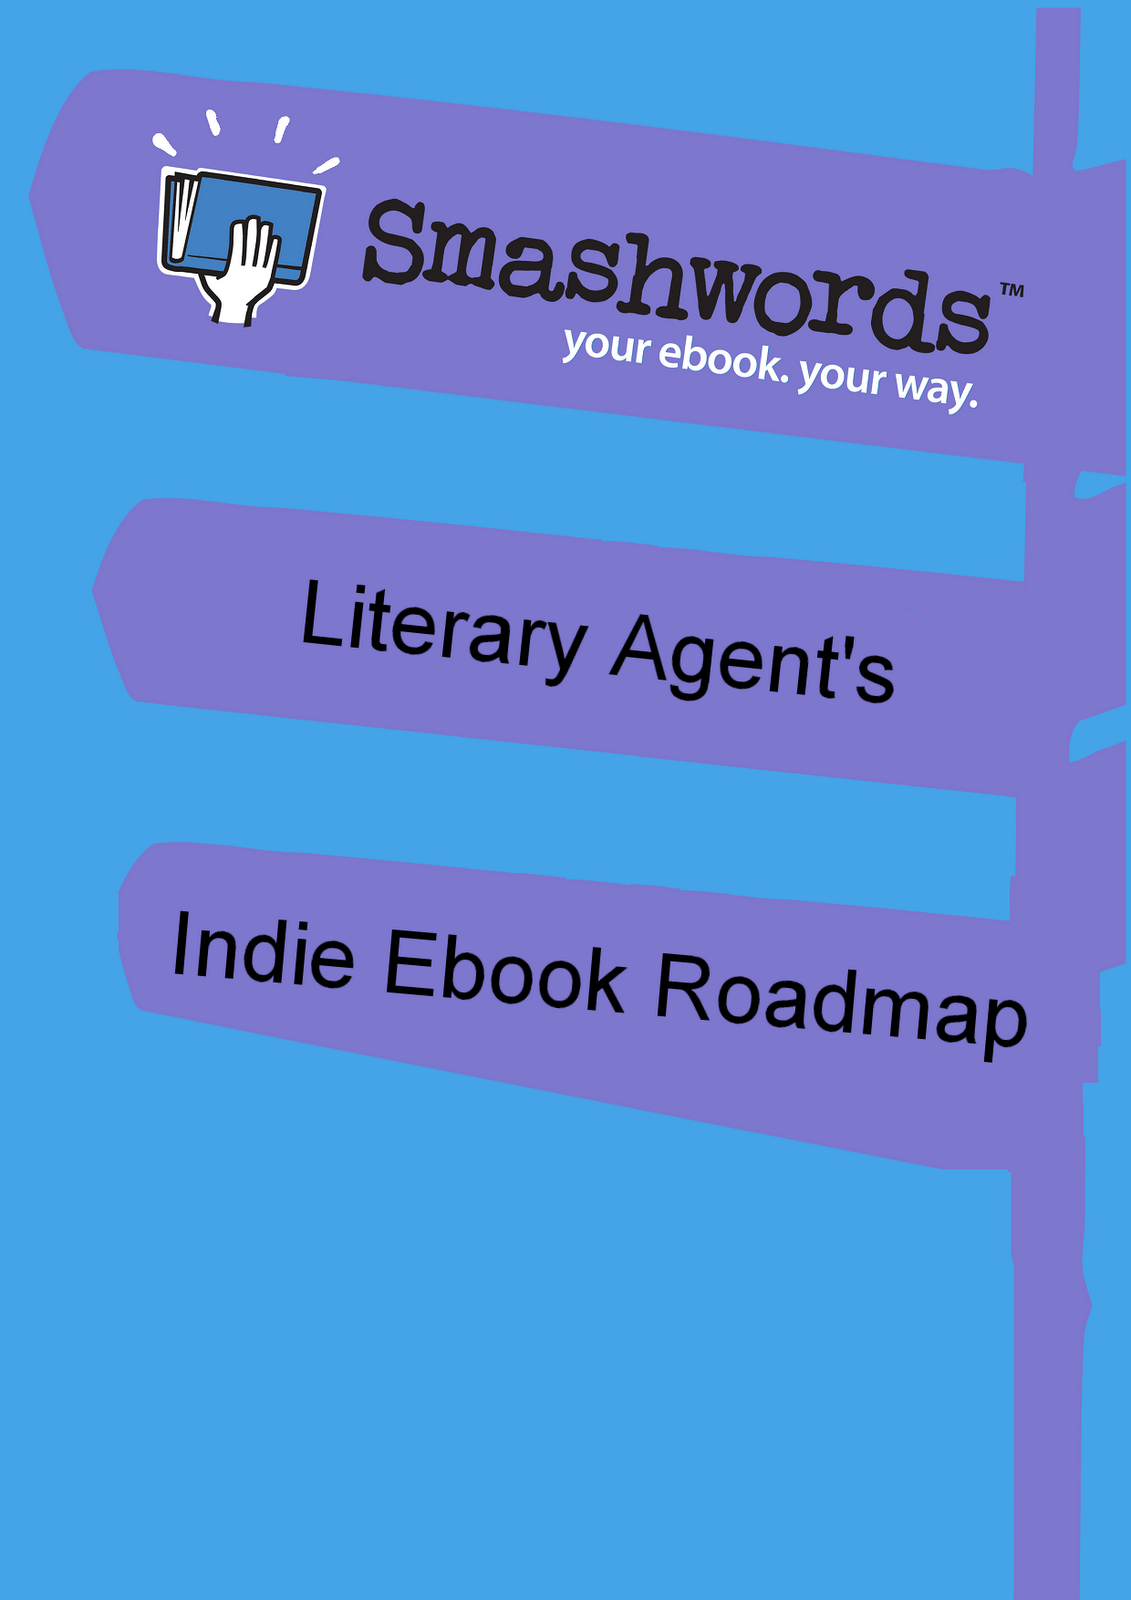 Smashwords Launches Ebook Publishing Service For Literary Agents